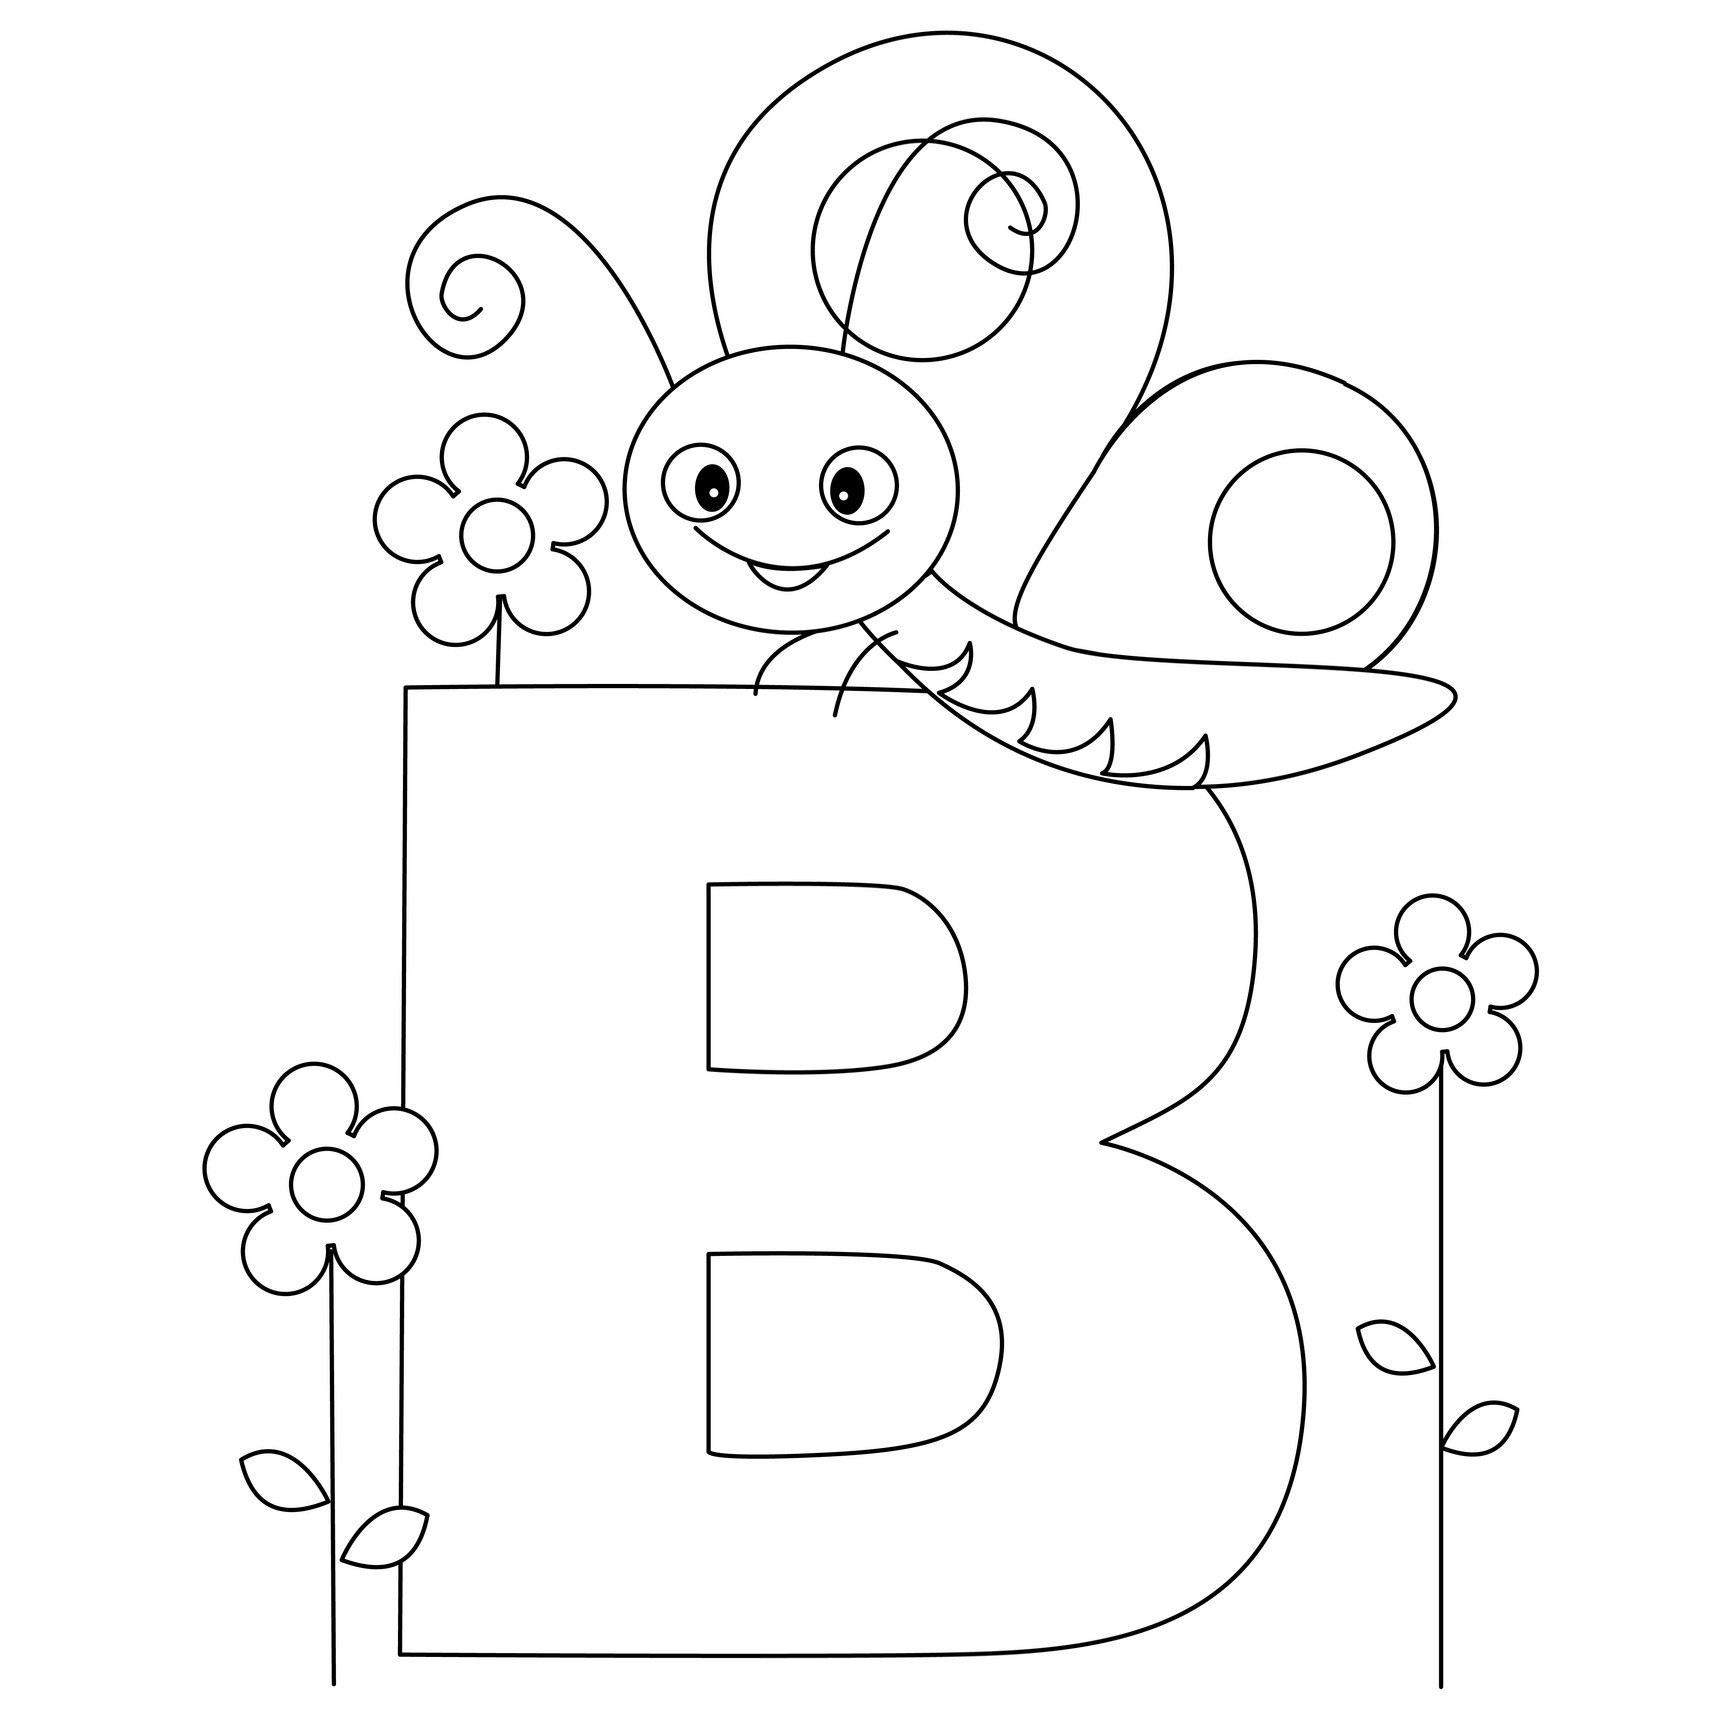 Free Printable Alphabet Coloring Pages For Kids Best The Letter A Coloring Pages Printable